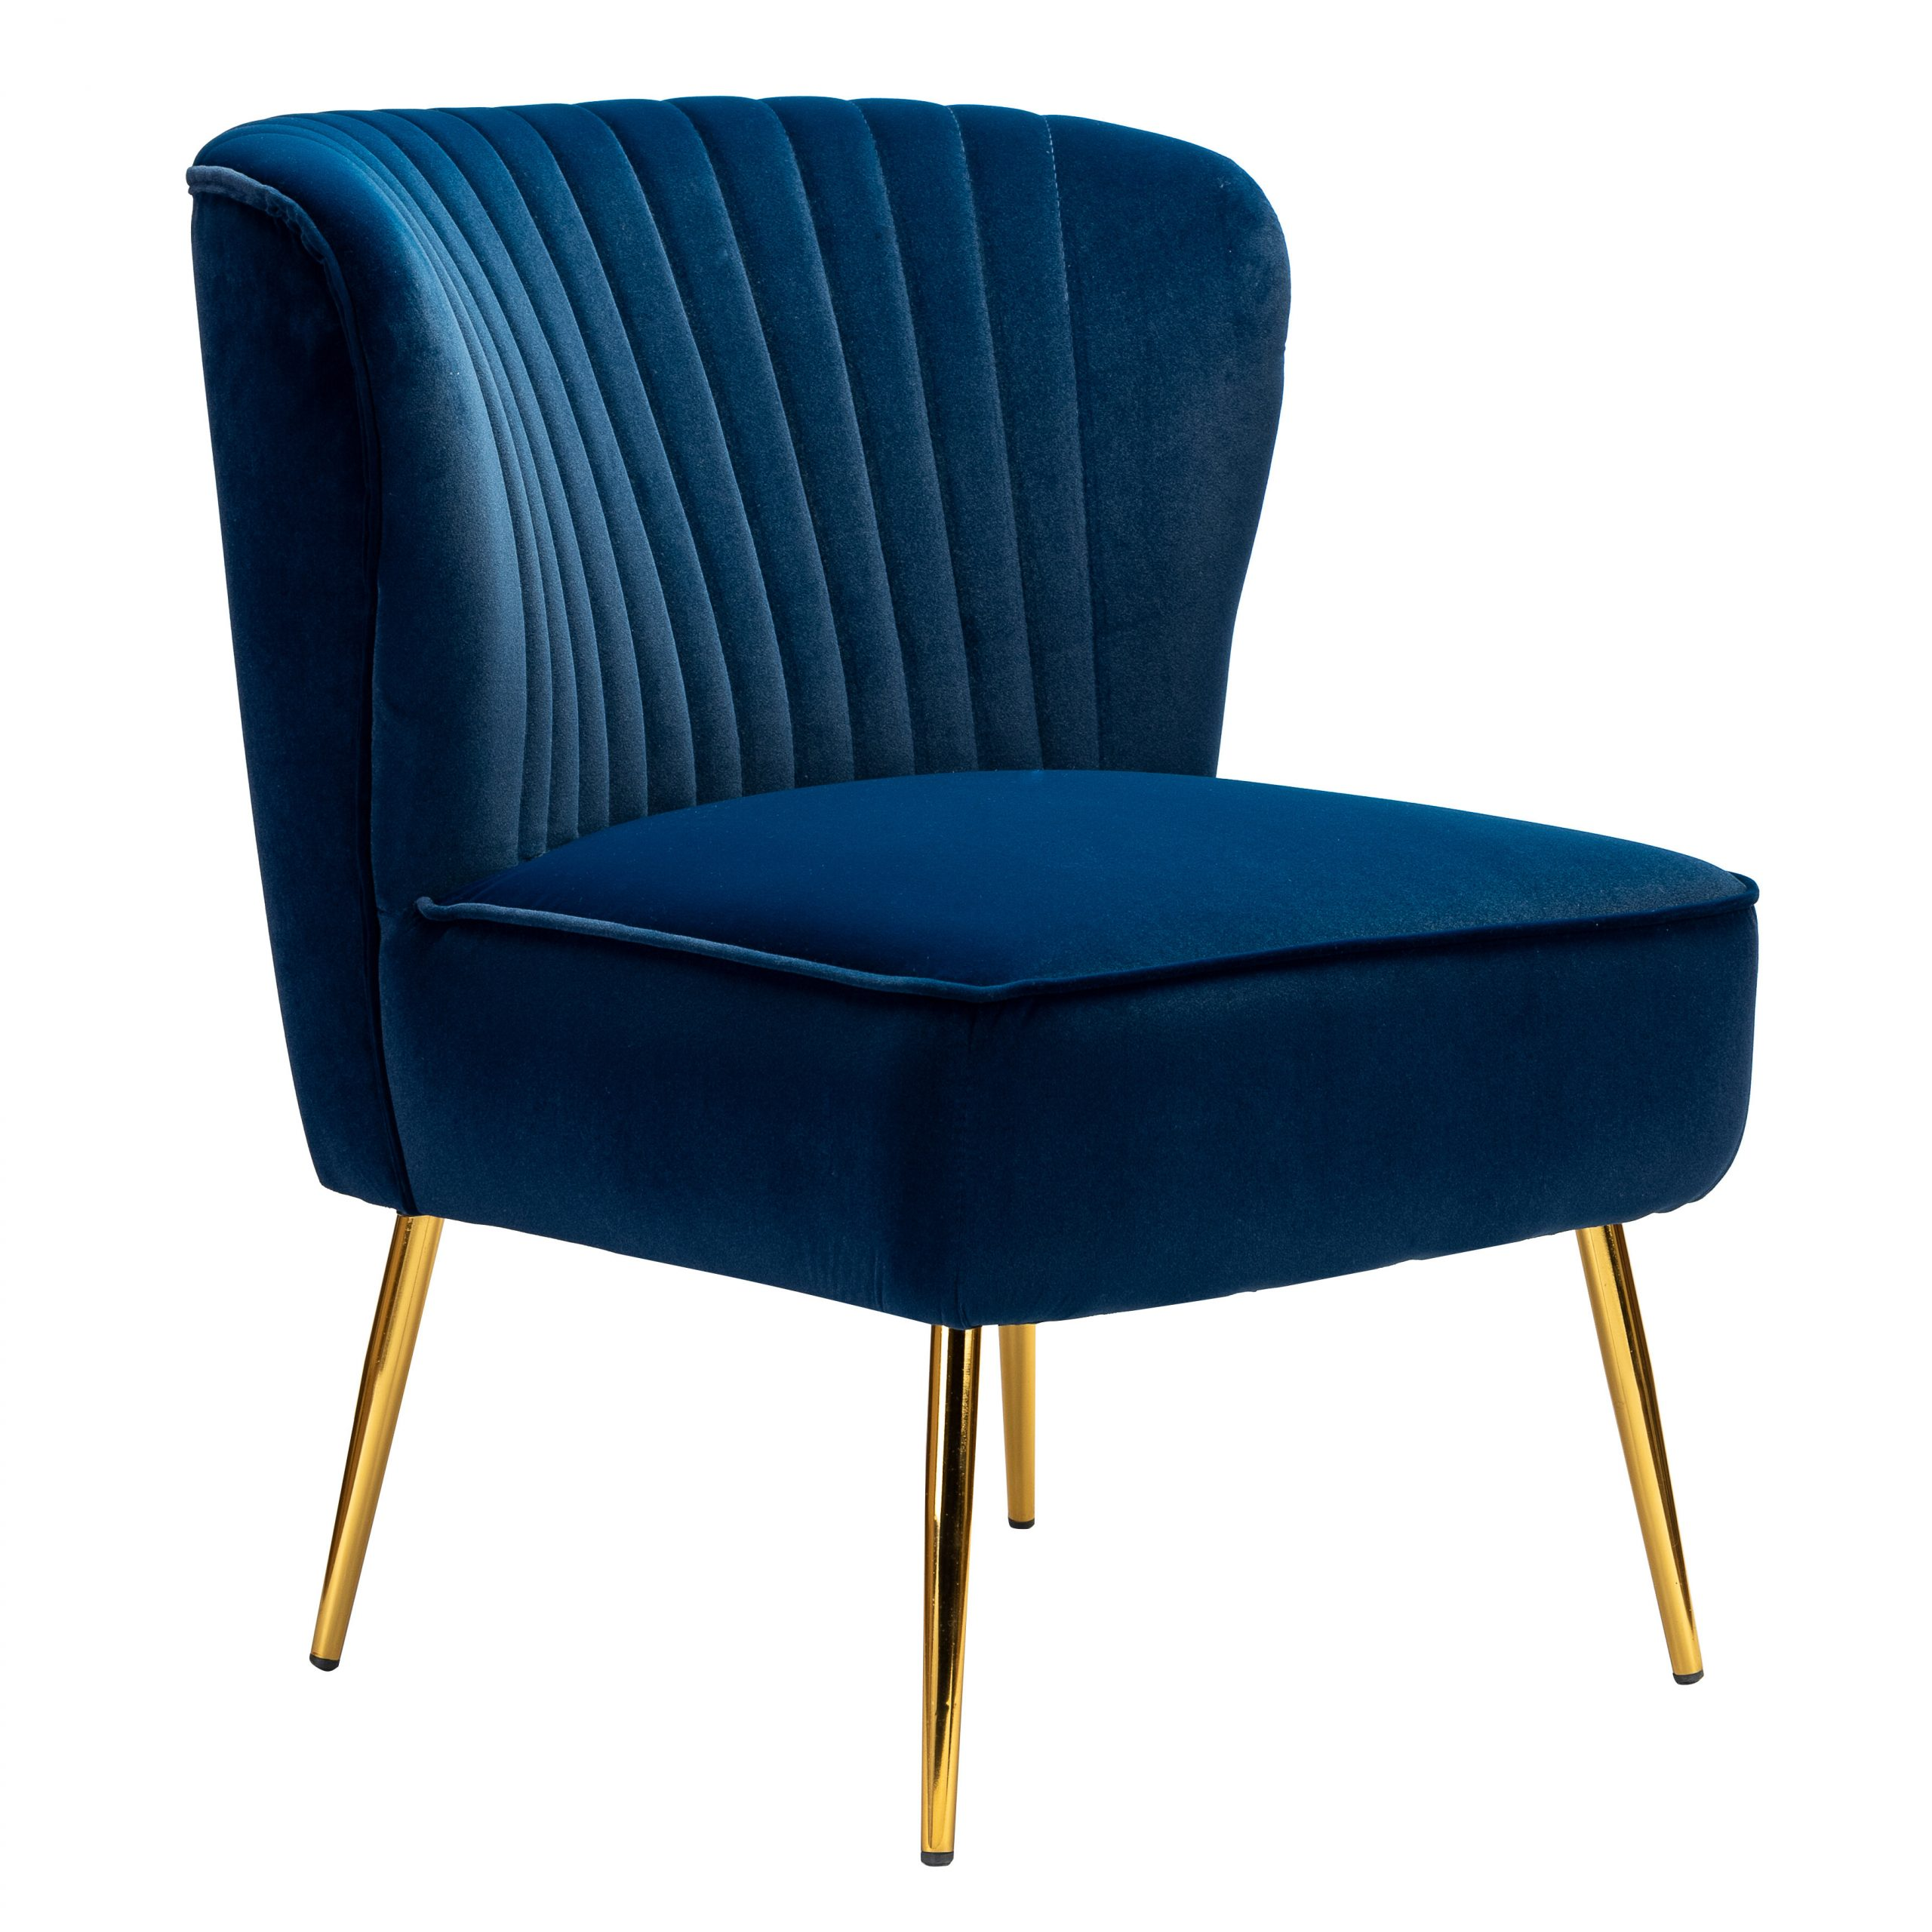 Most Recent Erasmus Side Chair Within Erasmus Velvet Side Chairs (set Of 2) (View 4 of 20)